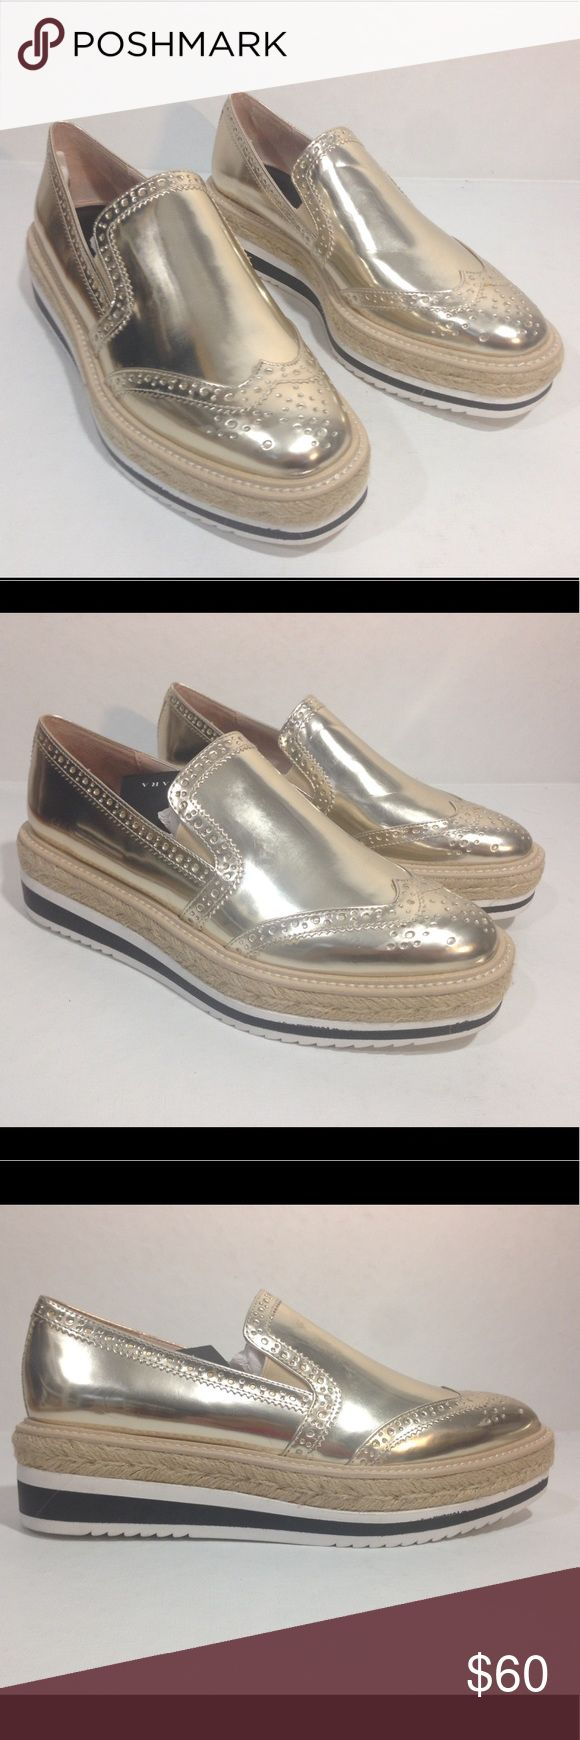 ZARA GOLDEN PLATFORM LOAFERS New with tags, no box. Size 37/6.5. No defects UPPER:  100% polyurethane  LINING:  80% polyurethane, 20% polyester  SOLE:  100% ethylene vinyl acetate Zara Shoes Platforms